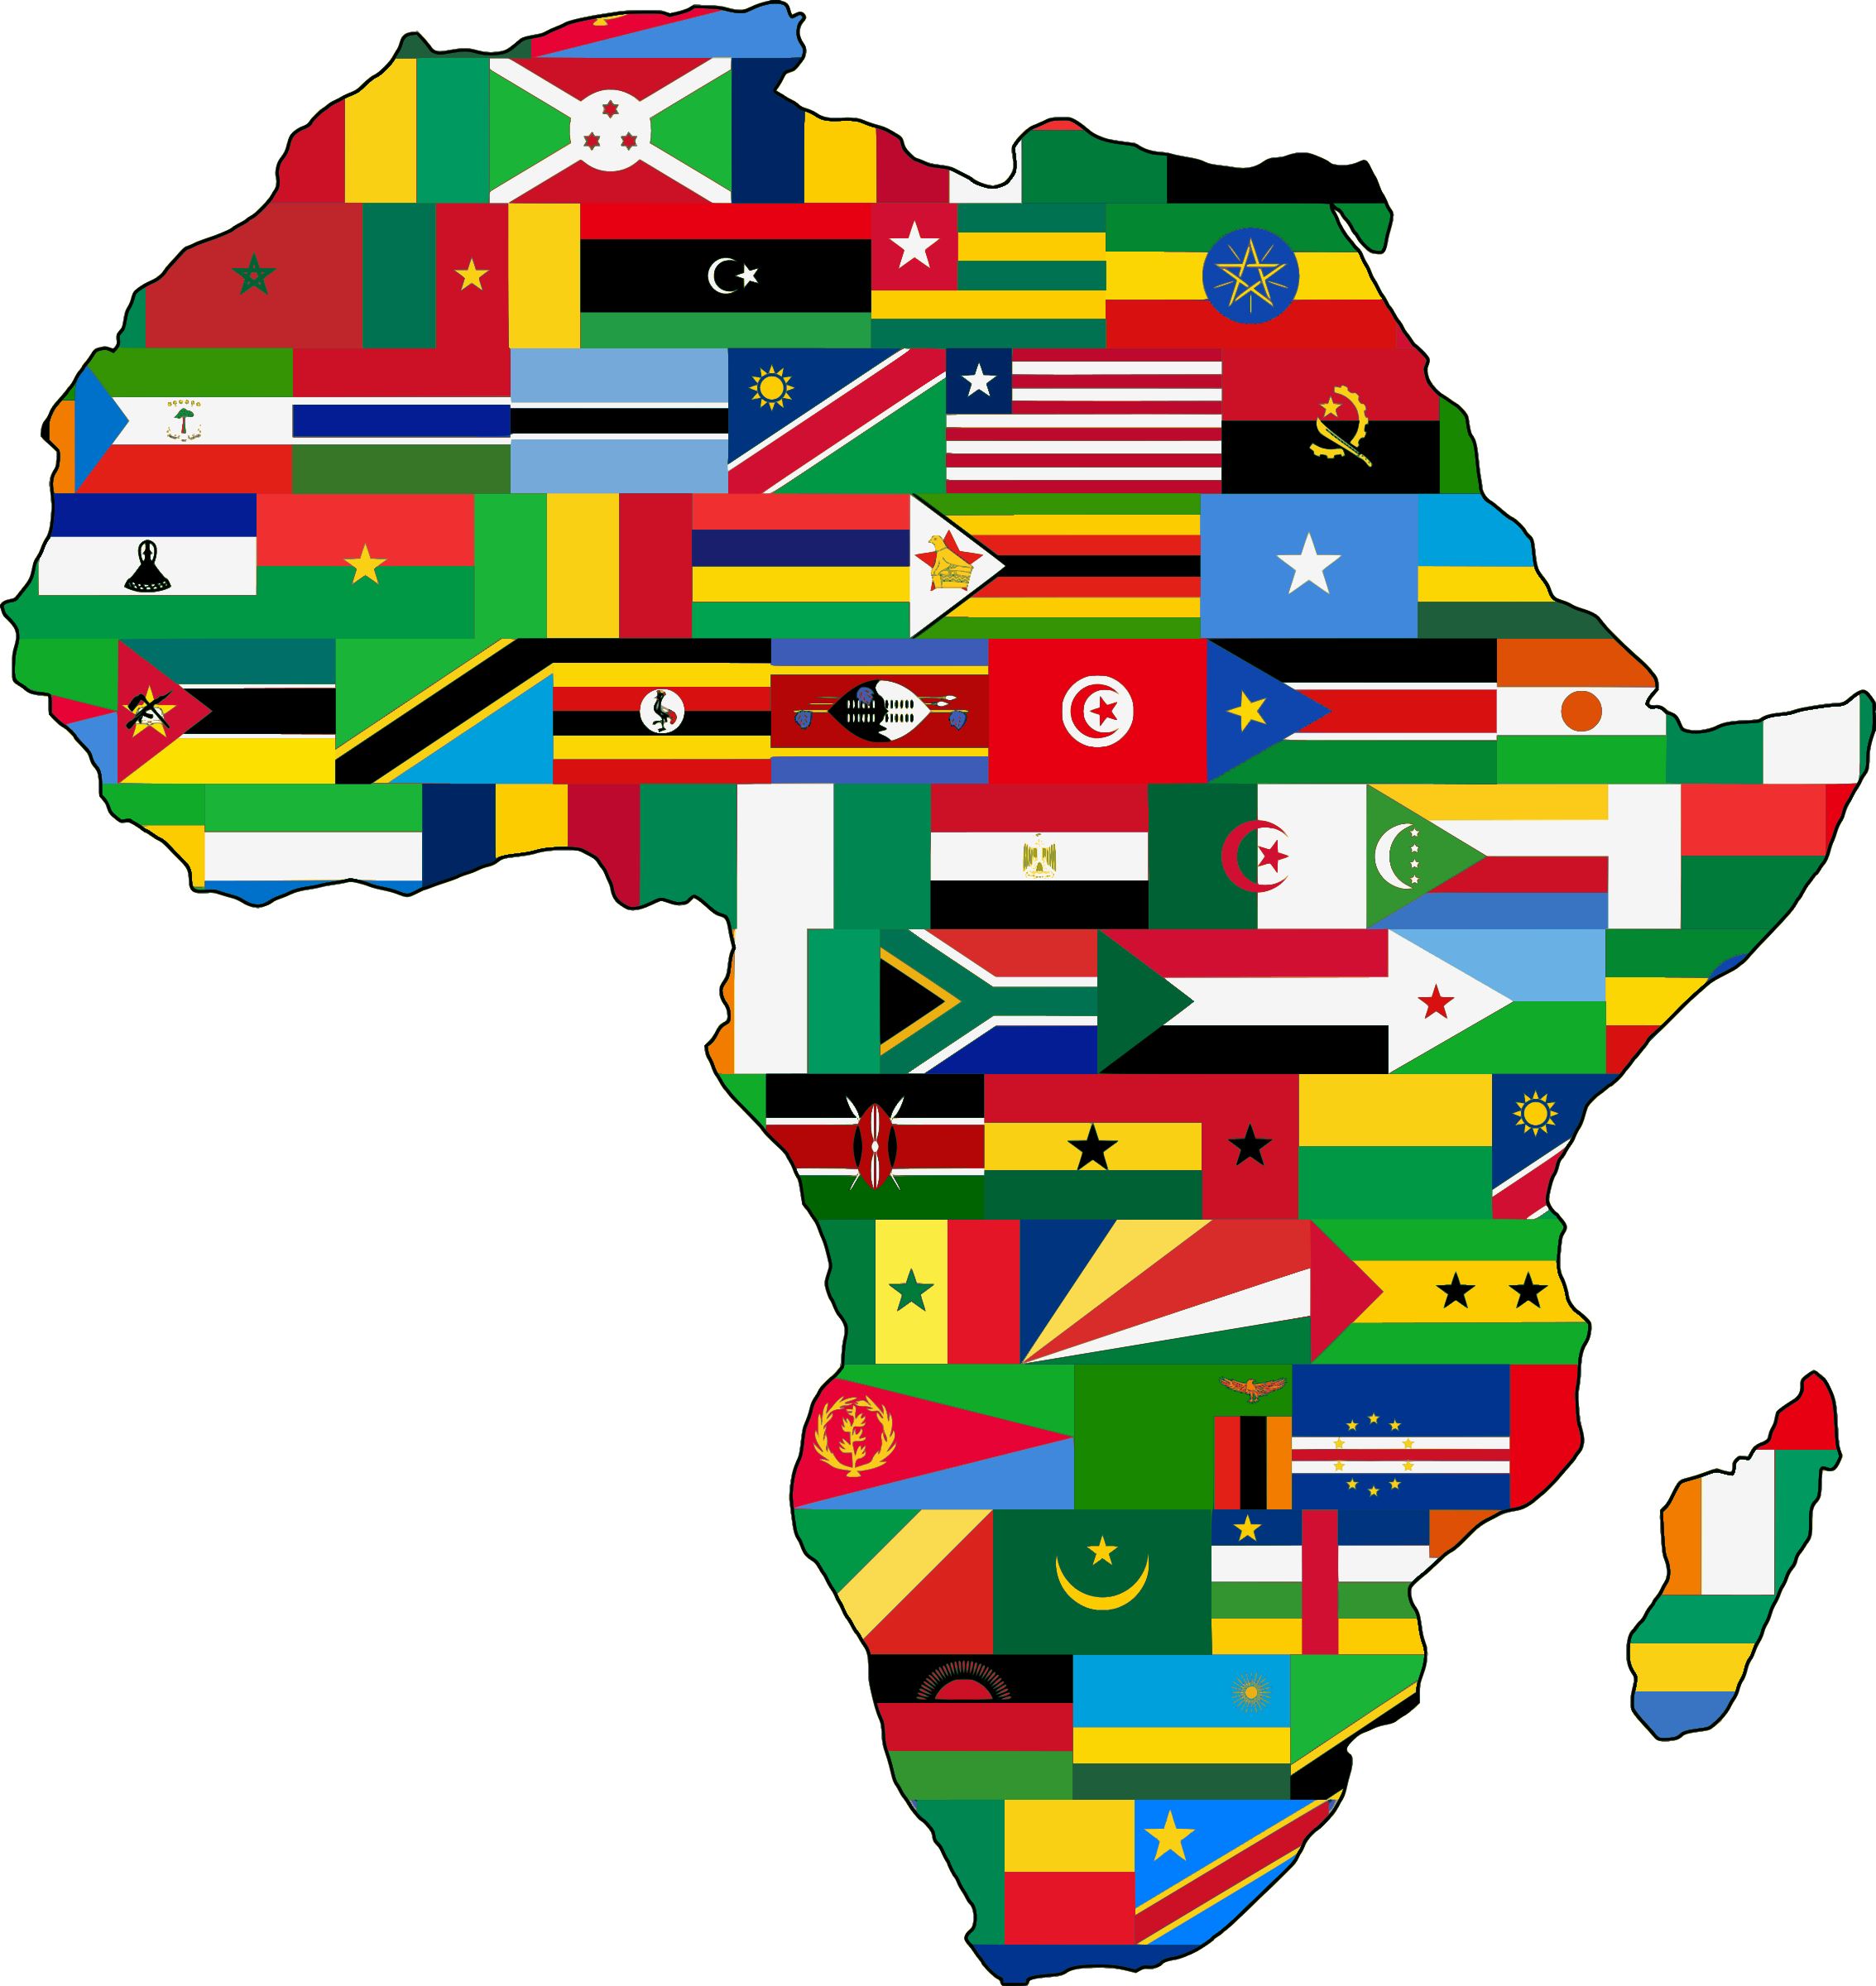 Future clipart ongoing. Africa flags big image